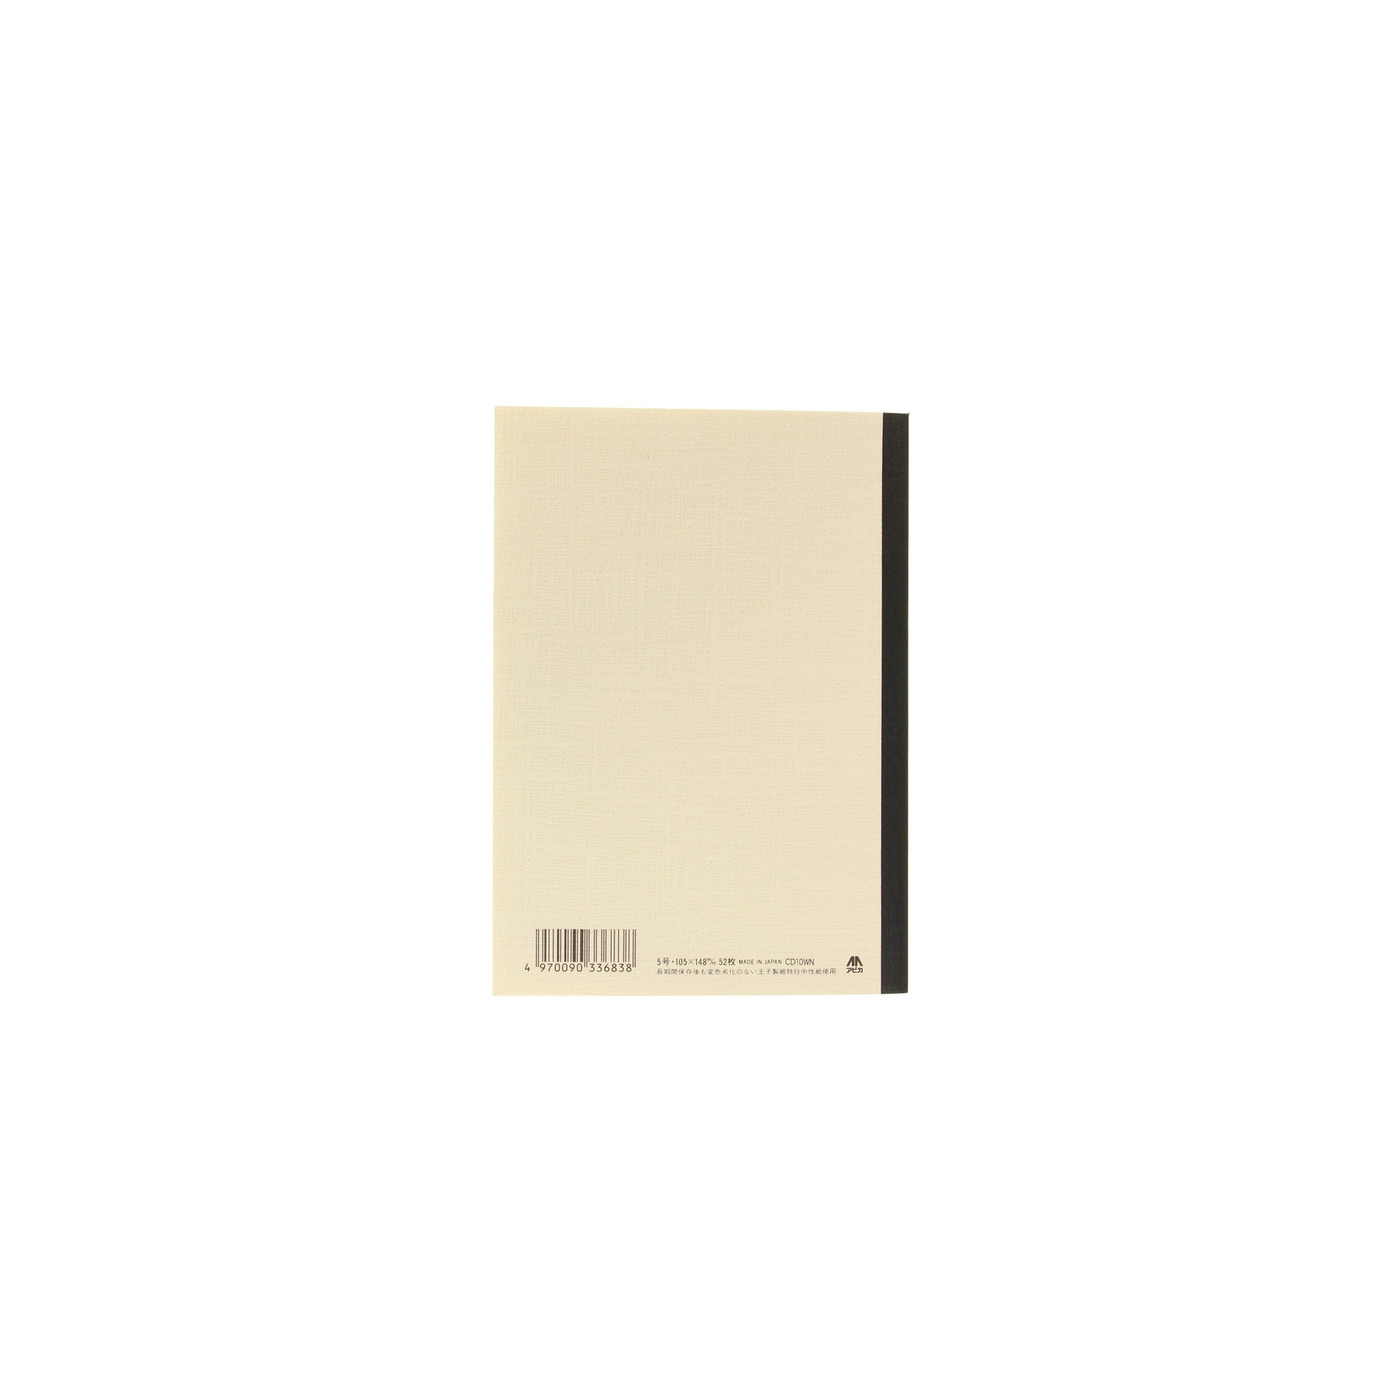 Apica CD10 notebook - A6 LINED